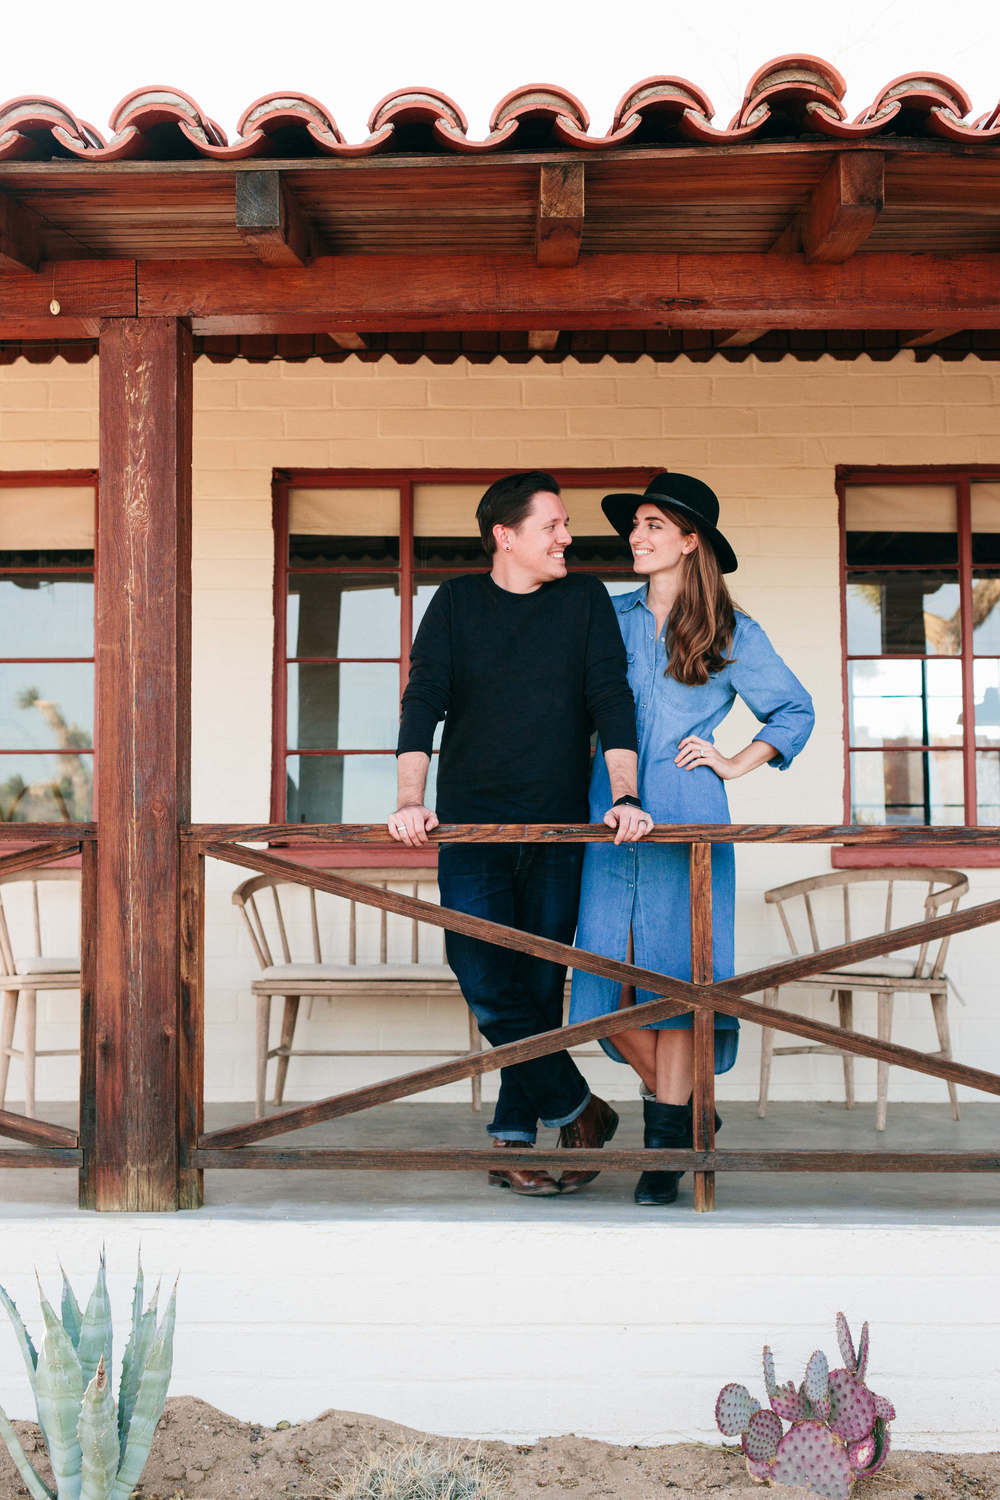 Sara and Rich Combs at The Joshua Tree House | DesignComb